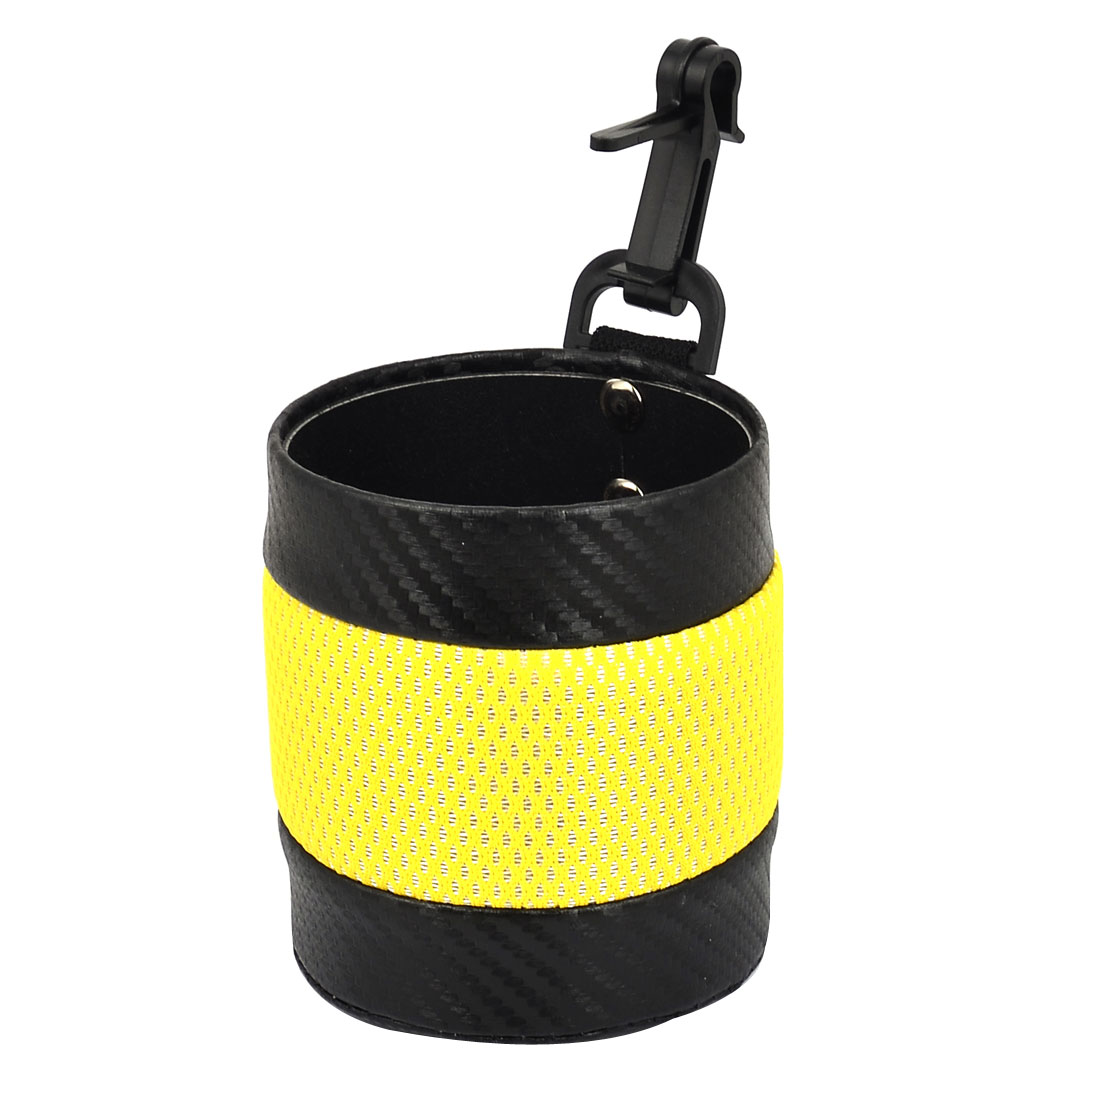 Auto Car Vehicle Air Vent Mount Phone GPS Pocket Bag Pouch Holder Yellow Black